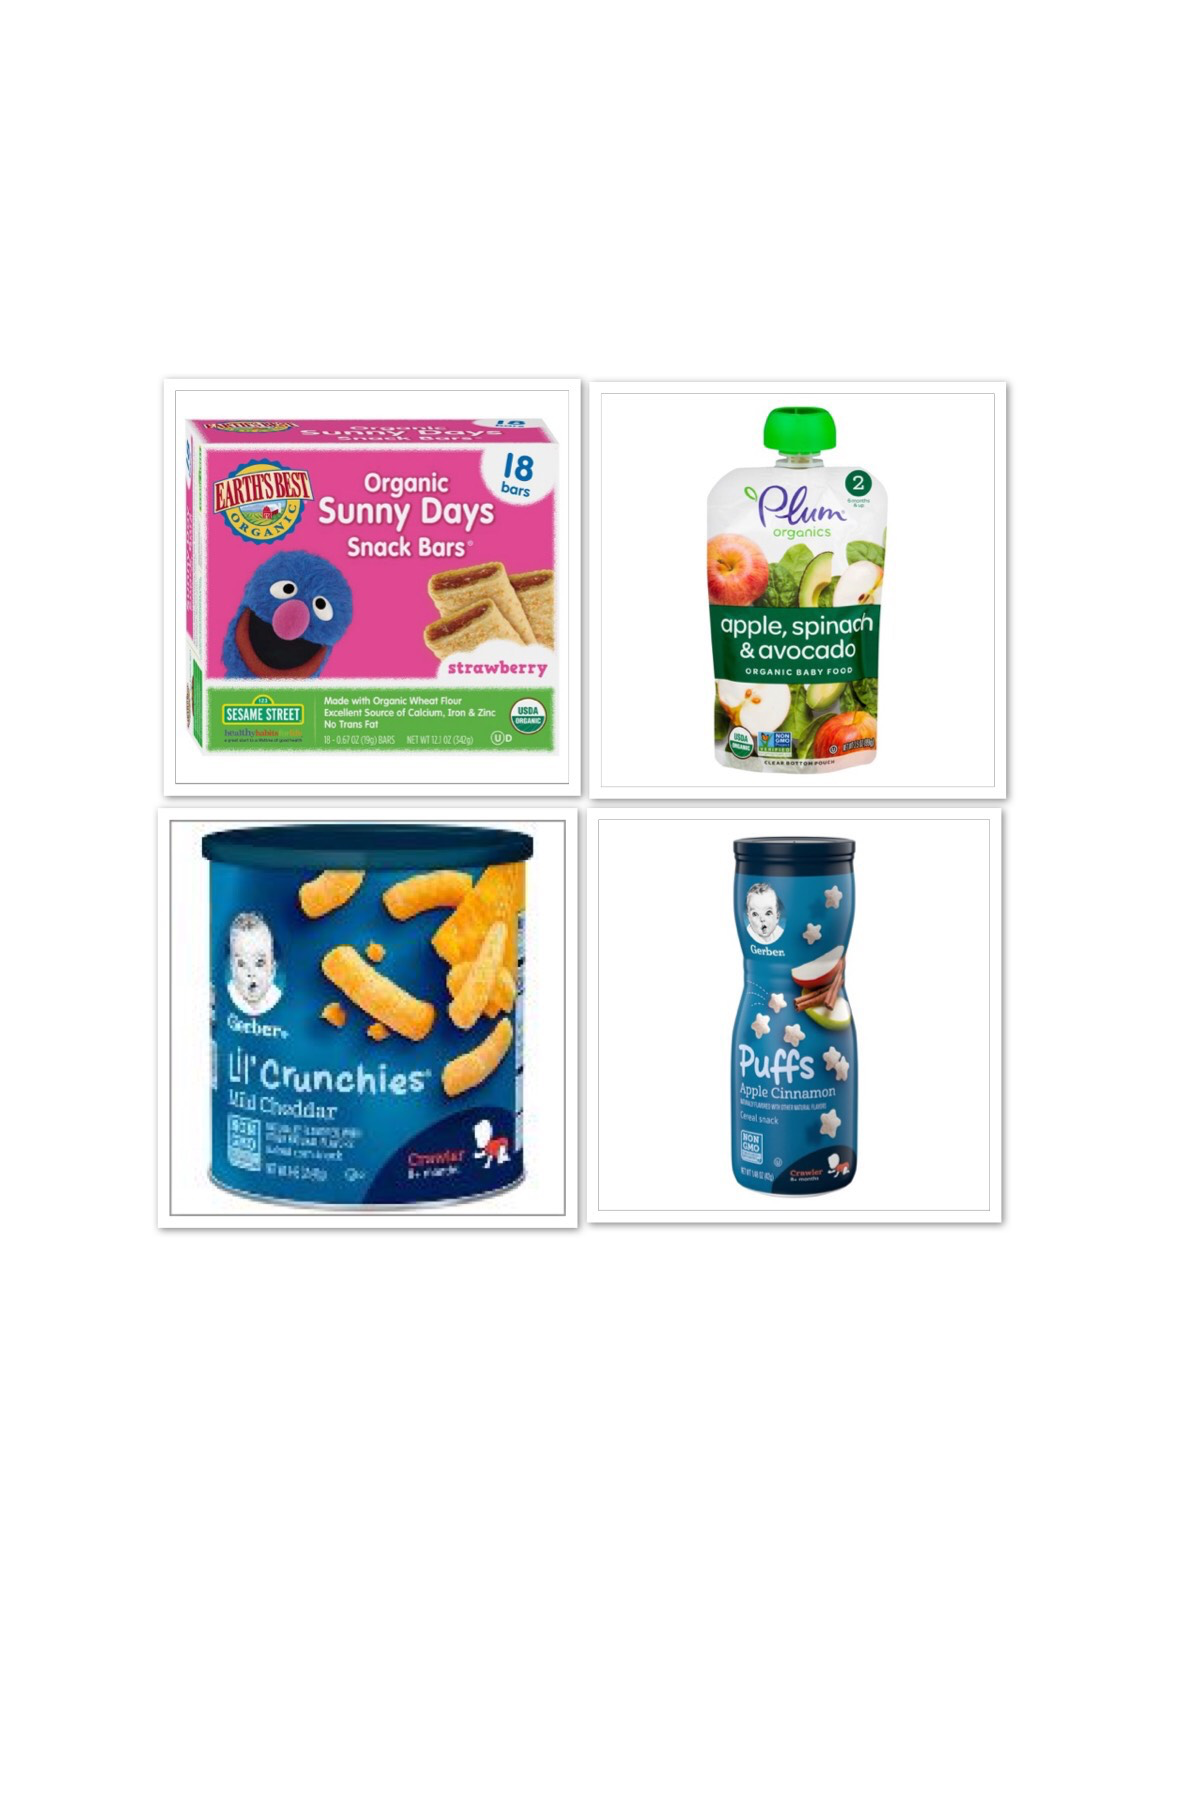 https://www.target.com/p/gerber-puffs-apple-cinnamon-1-48oz/-/A-11191922?ref=tgt_adv_XS000000&AFID=google_pla_df&fndsrc=tgtao&CPNG=PLA_Other_All+Products%2BShopping_Local&adgroup=All+Products_Catchall&LID=700000001170770pgs&network=g&device=m&location=9003539&gclsrc=aw.ds&ds_rl=1246978&ds_rl=1246978&ds_rl=1246978&ref=tgt_adv_XS000000&AFID=google_pla_df&CPNG=PLA_Other_All%20Products+Shopping_Local&adgroup=All%20Products_Catchall&LID=700000001170770pgs&network=g&device=m&location=9003539&gclid=Cj0KCQiAgMPgBRDDARIsAOh3uyLHdYQFAYCkxiuIS0R3VmeB2vmVQ9yB-kmA07mRDdytg1o6uKTnh3waArC6EALw_wcB&gclsrc=aw.ds    https://www.target.com/p/earth-s-best-sesame-street-organic-sunny-days-snack-bars-strawberry-18ct/-/A-52126348    https://www.target.com/p/gerber-lil-crunchies-baked-whole-grain-corn-snack-mild-cheddar-1-48oz/-/A-11195277    https://www.target.com/p/plum-organics-stage-2-pureed-baby-food-pouch-apple-spinach-avocado-3-5oz/-/A-53298130   *I do not own the rights to the above images.